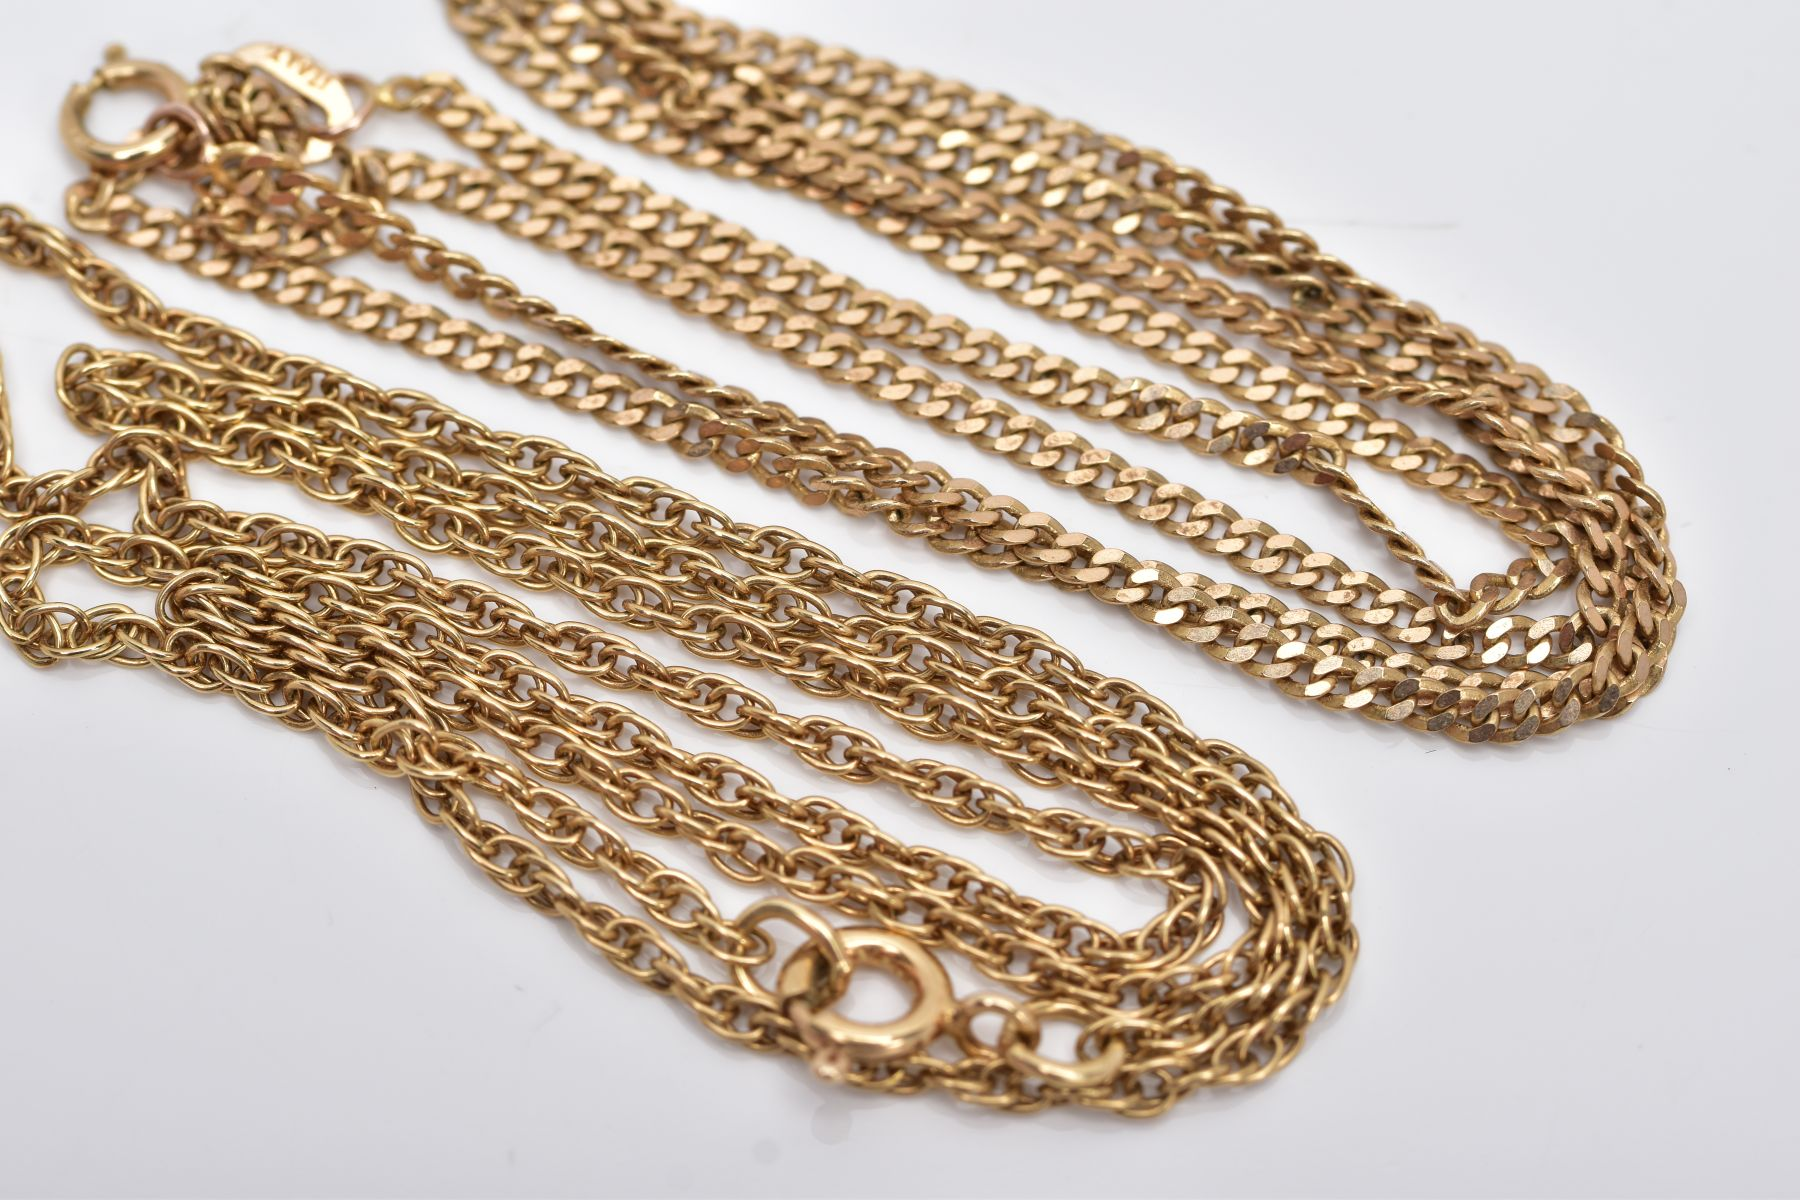 TWO 9CT GOLD CHAINS, the first a Prince of Wales chain, fitted with a spring clasp, hallmarked 9ct - Image 2 of 2